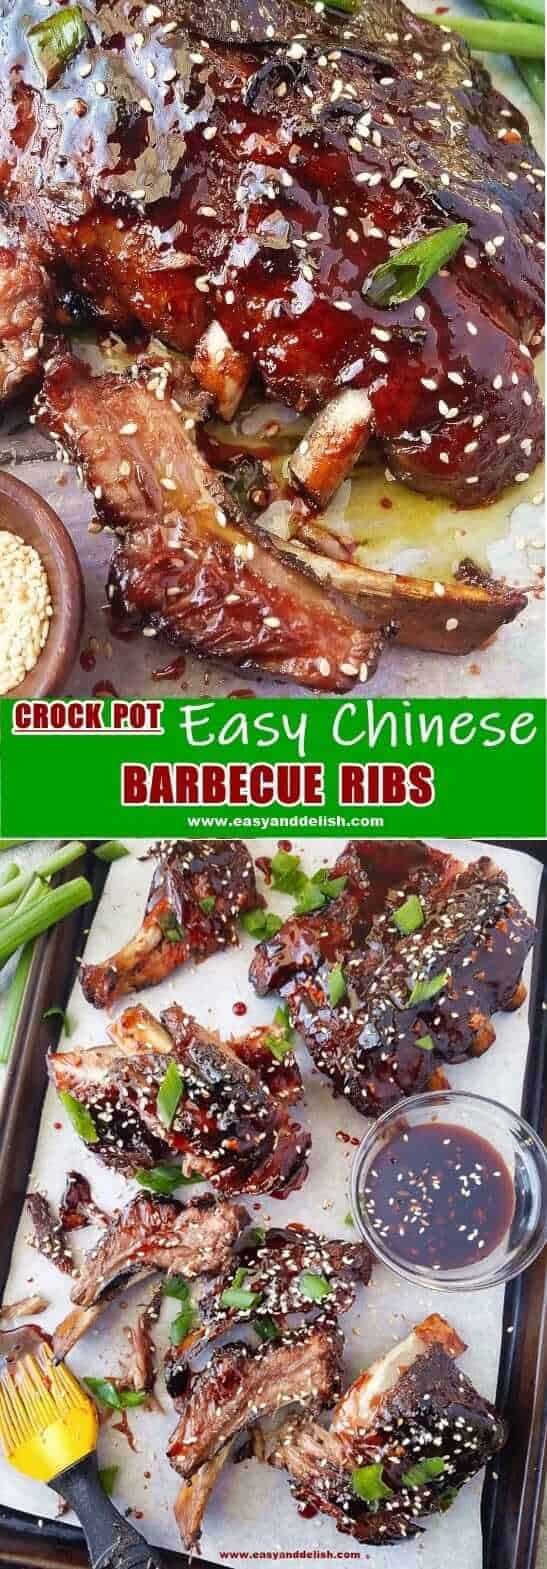 Two close up images showing Chinese barbecue pork ribs served in a pan